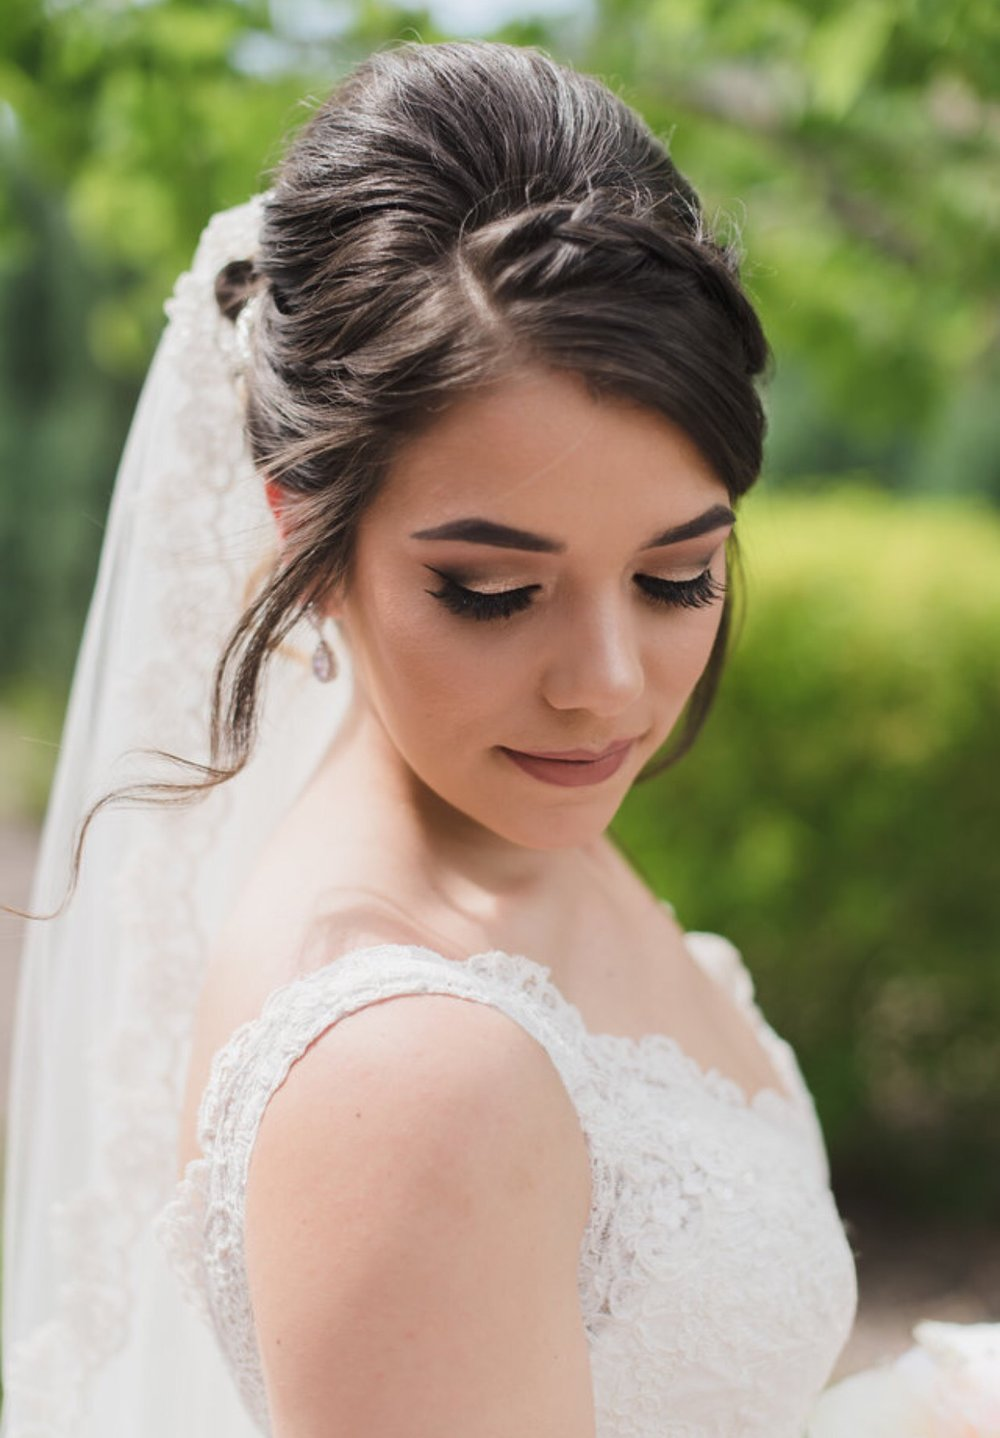 bride-denver-wedding-hairstylist